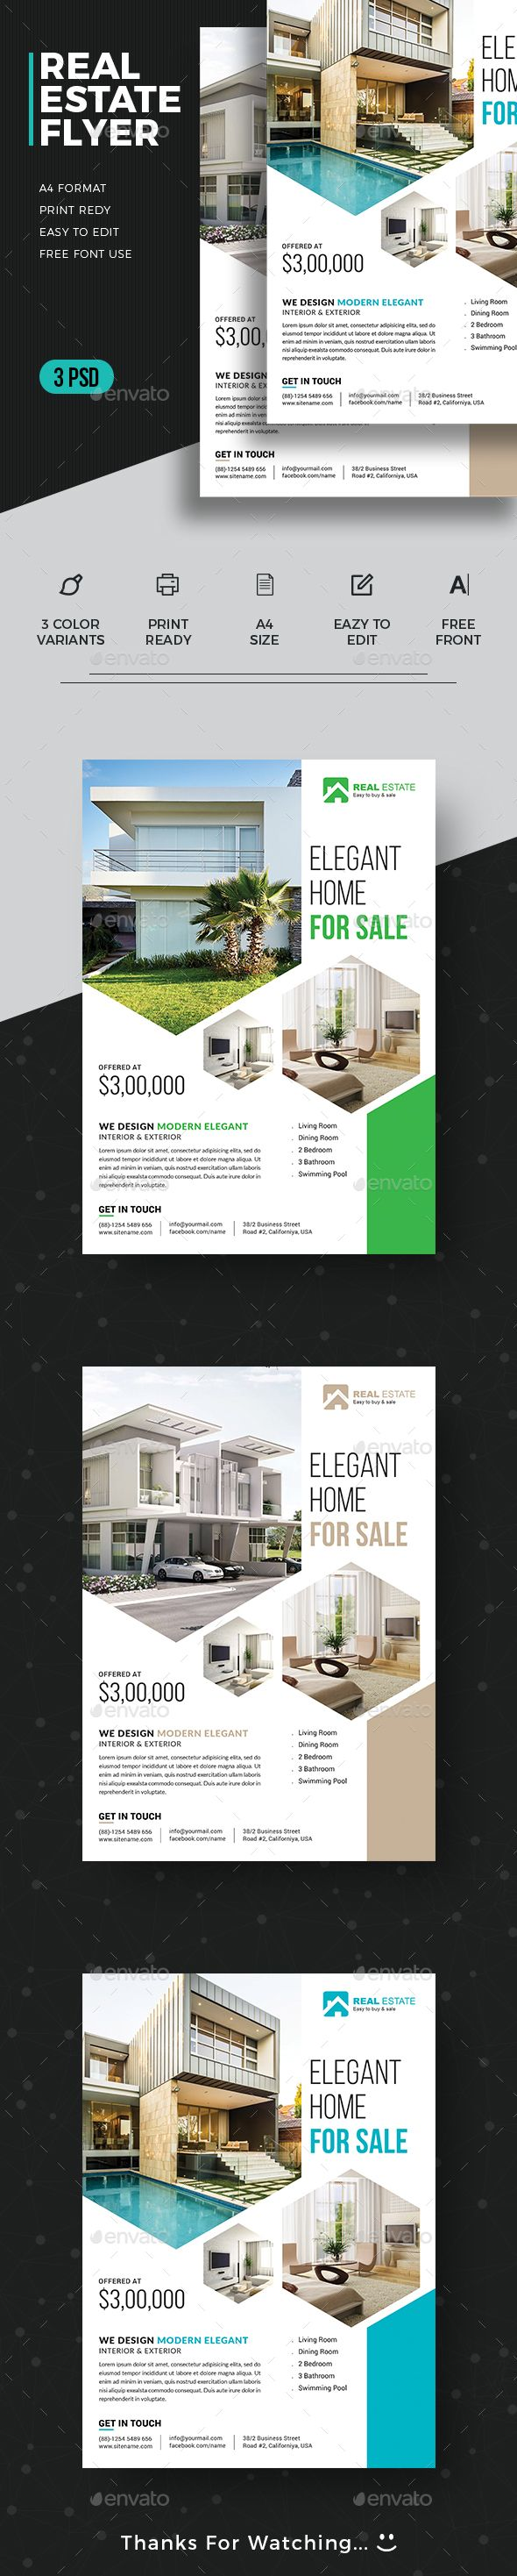 #Real #Estate #Flyer - Commerce Flyers Download here: https://graphicriver.net/item/real-estate-flyer/19550607?ref=alena994